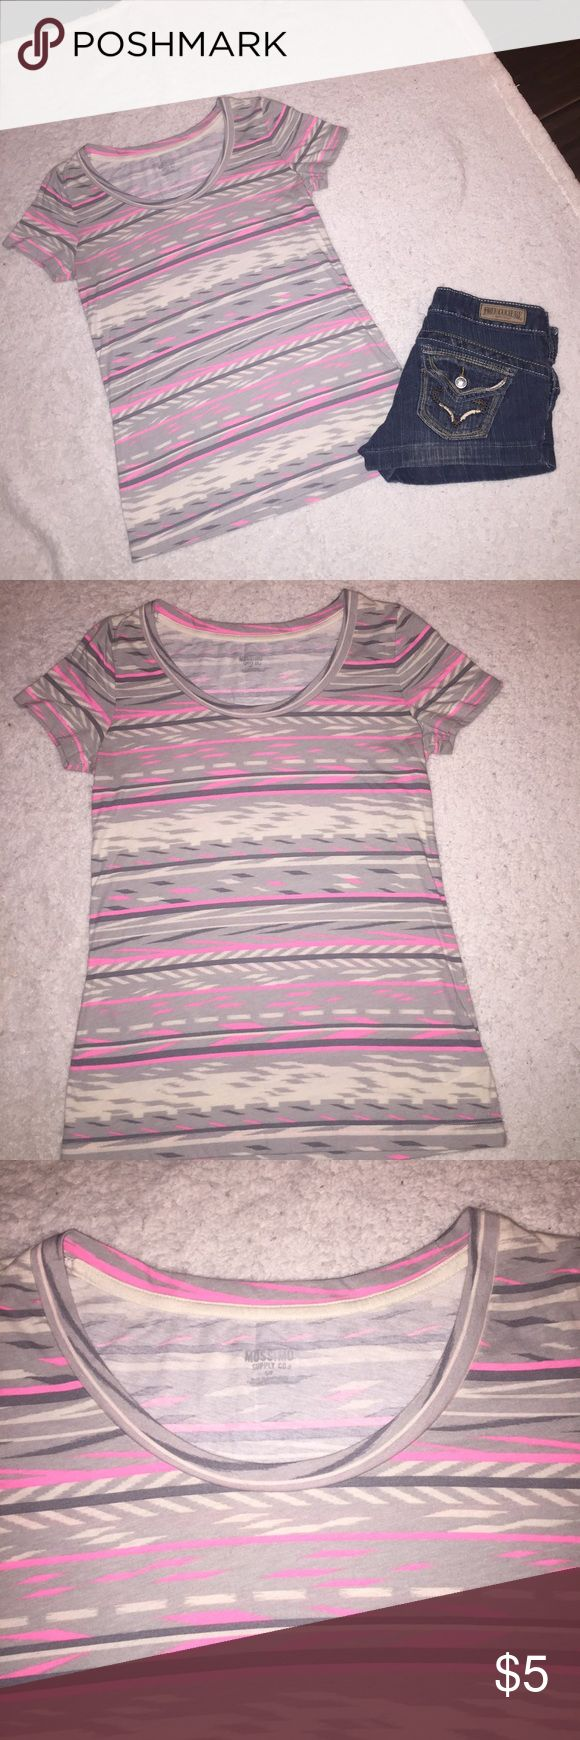 🔴4 FOR $10🔴MOSSIMO BOHEMIAN SCOOP NECK T-SHIRT S VERY CUTE BOHEMIAN T-SHIRT BY MOSSIMO.  BEAUTIFUL PASTEL COLORS.  IN EXCELLENT CONDITION. 💖IM HAVING A SALE!  EVERYTHING $10 AND UNDER IS 4 FOR $10.  EVERYTHING $20 AND UNDER IS 3 FOR $20.  PLEASE FEEL FREE TO ASK QUESTIONS!💖 Mossimo Supply Co Tops Tees - Short Sleeve